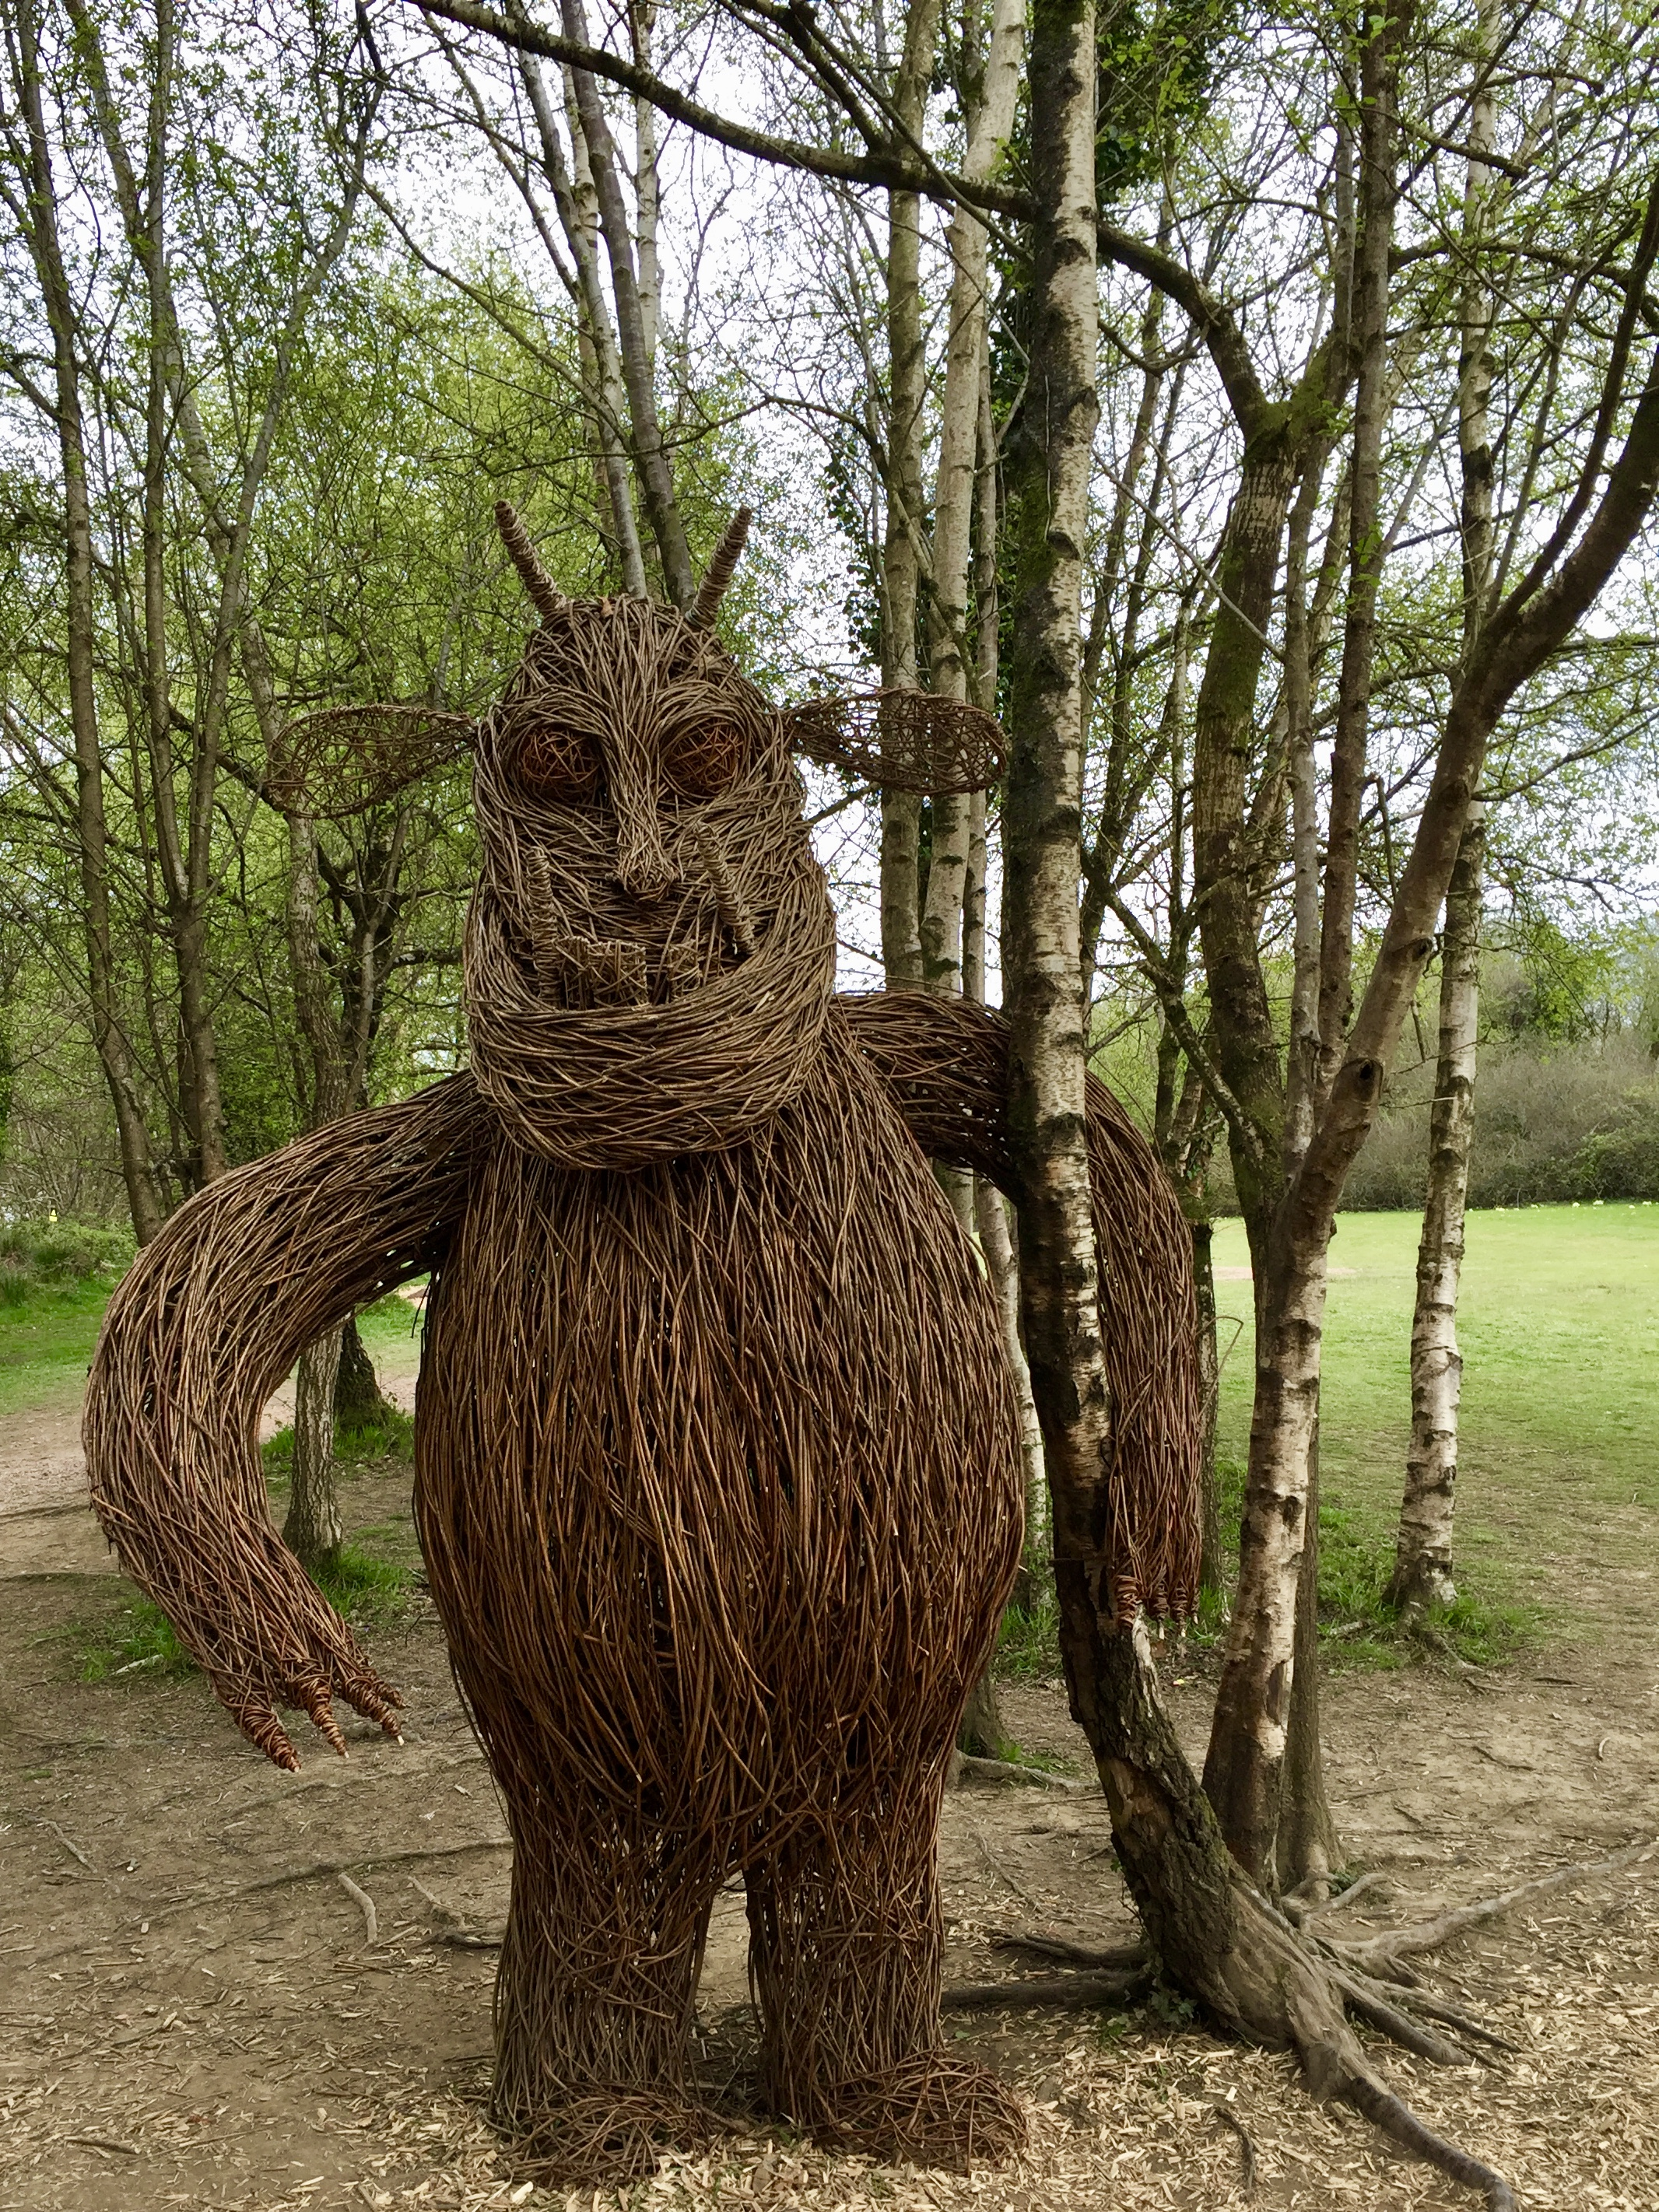 Gruffalo Trail Things to Do in Wales